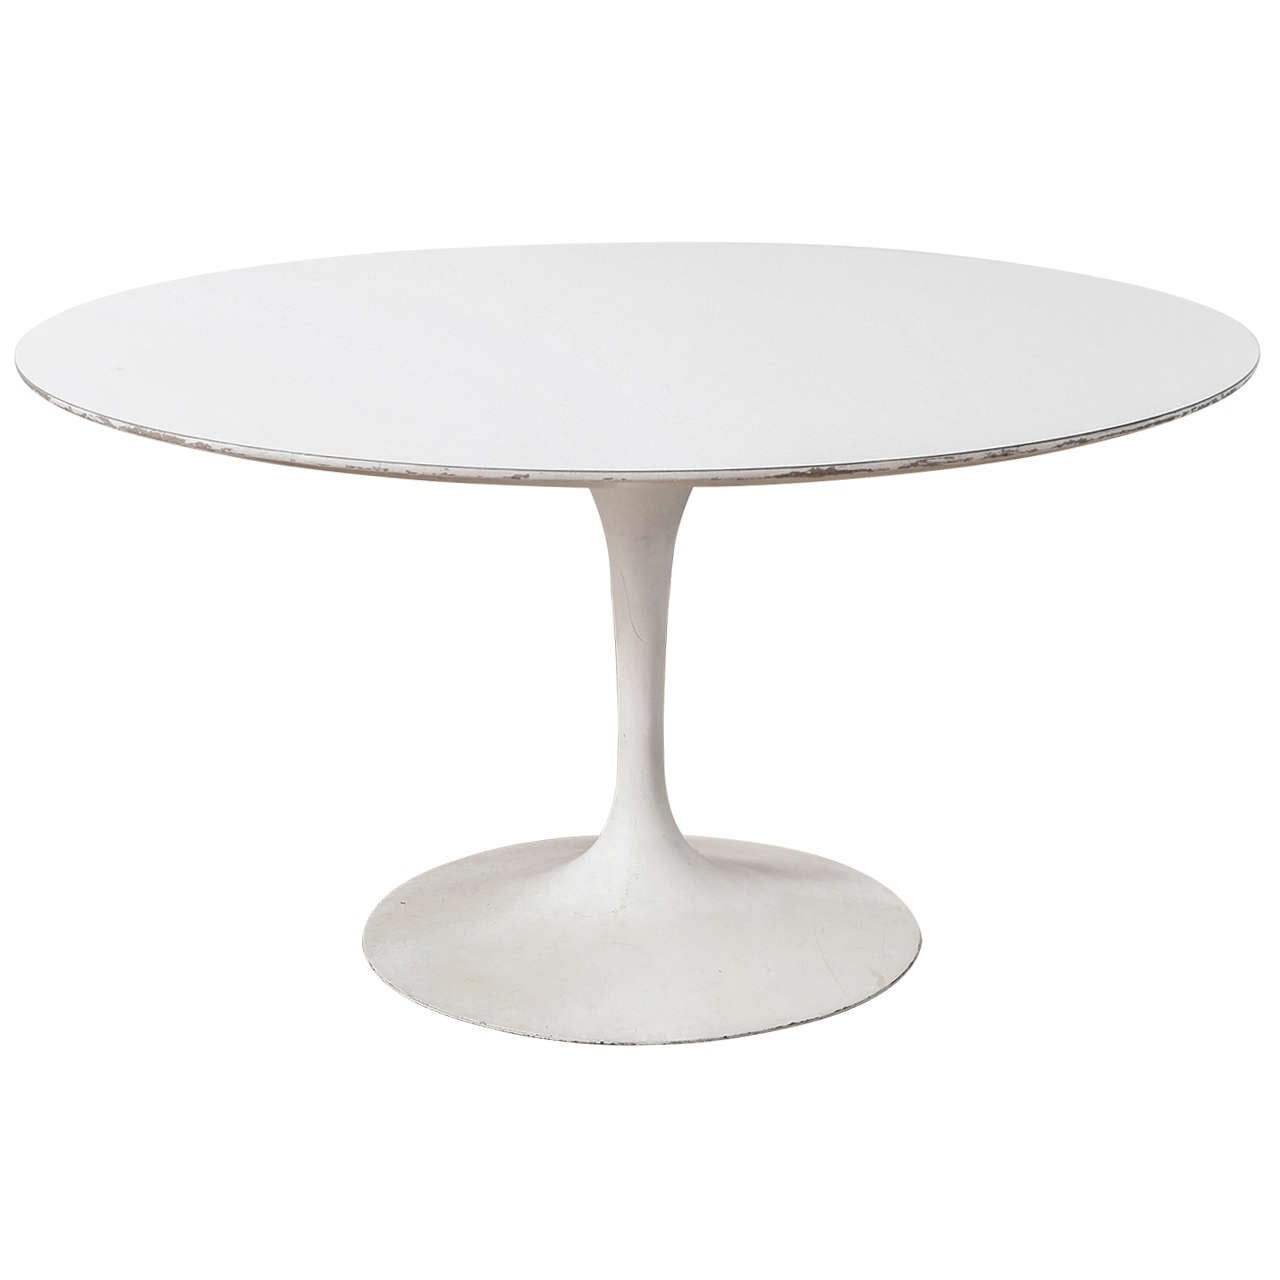 Distressed Saarinen For Knoll Tulip Table For Sale At 1stdibs